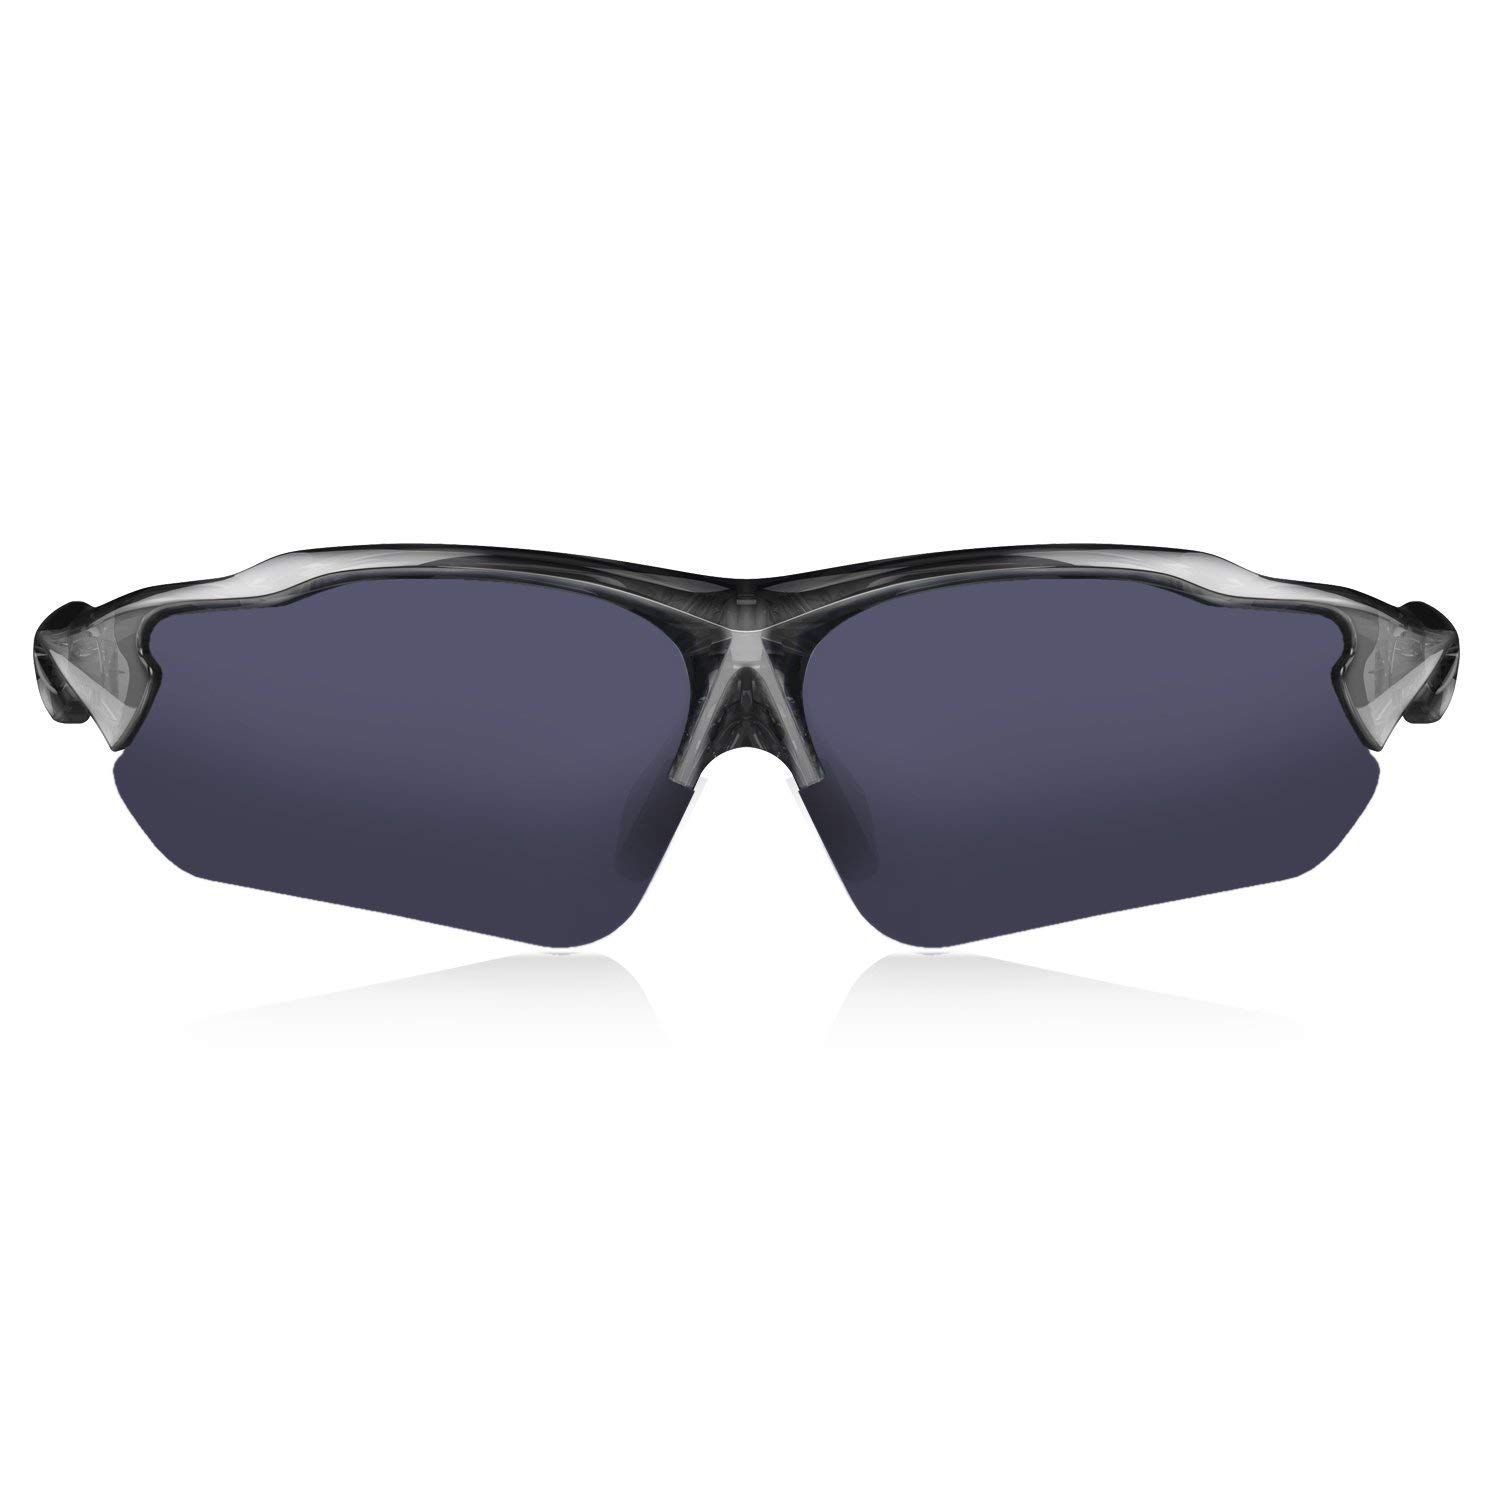 Hulislem Blade Sport Polarized Sunglasses | Best Depth Perception